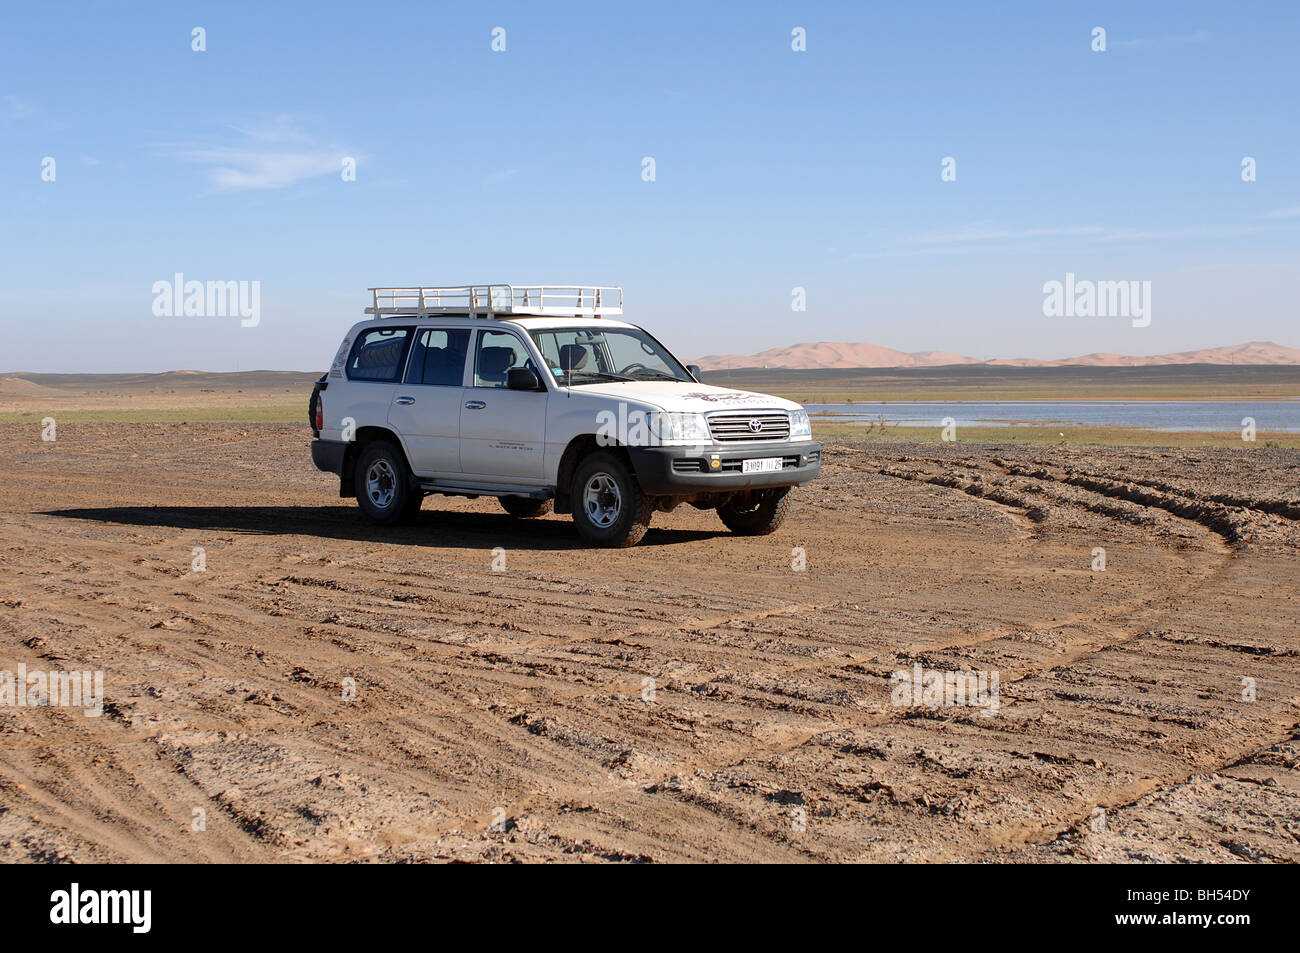 Offroad in the Sahara Desert - Stock Image